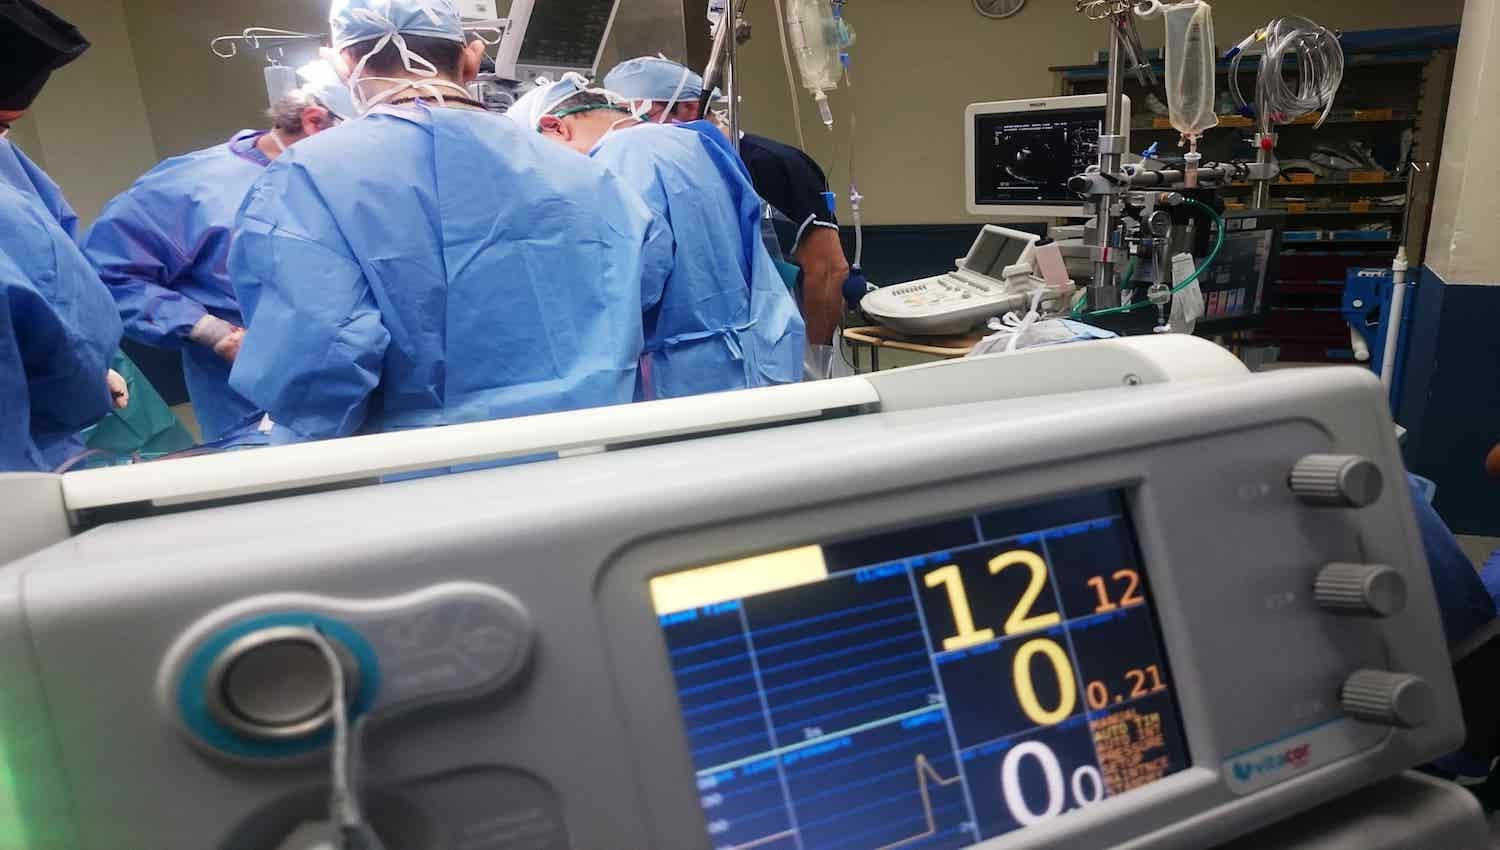 Doctors working on a patient in an operating room